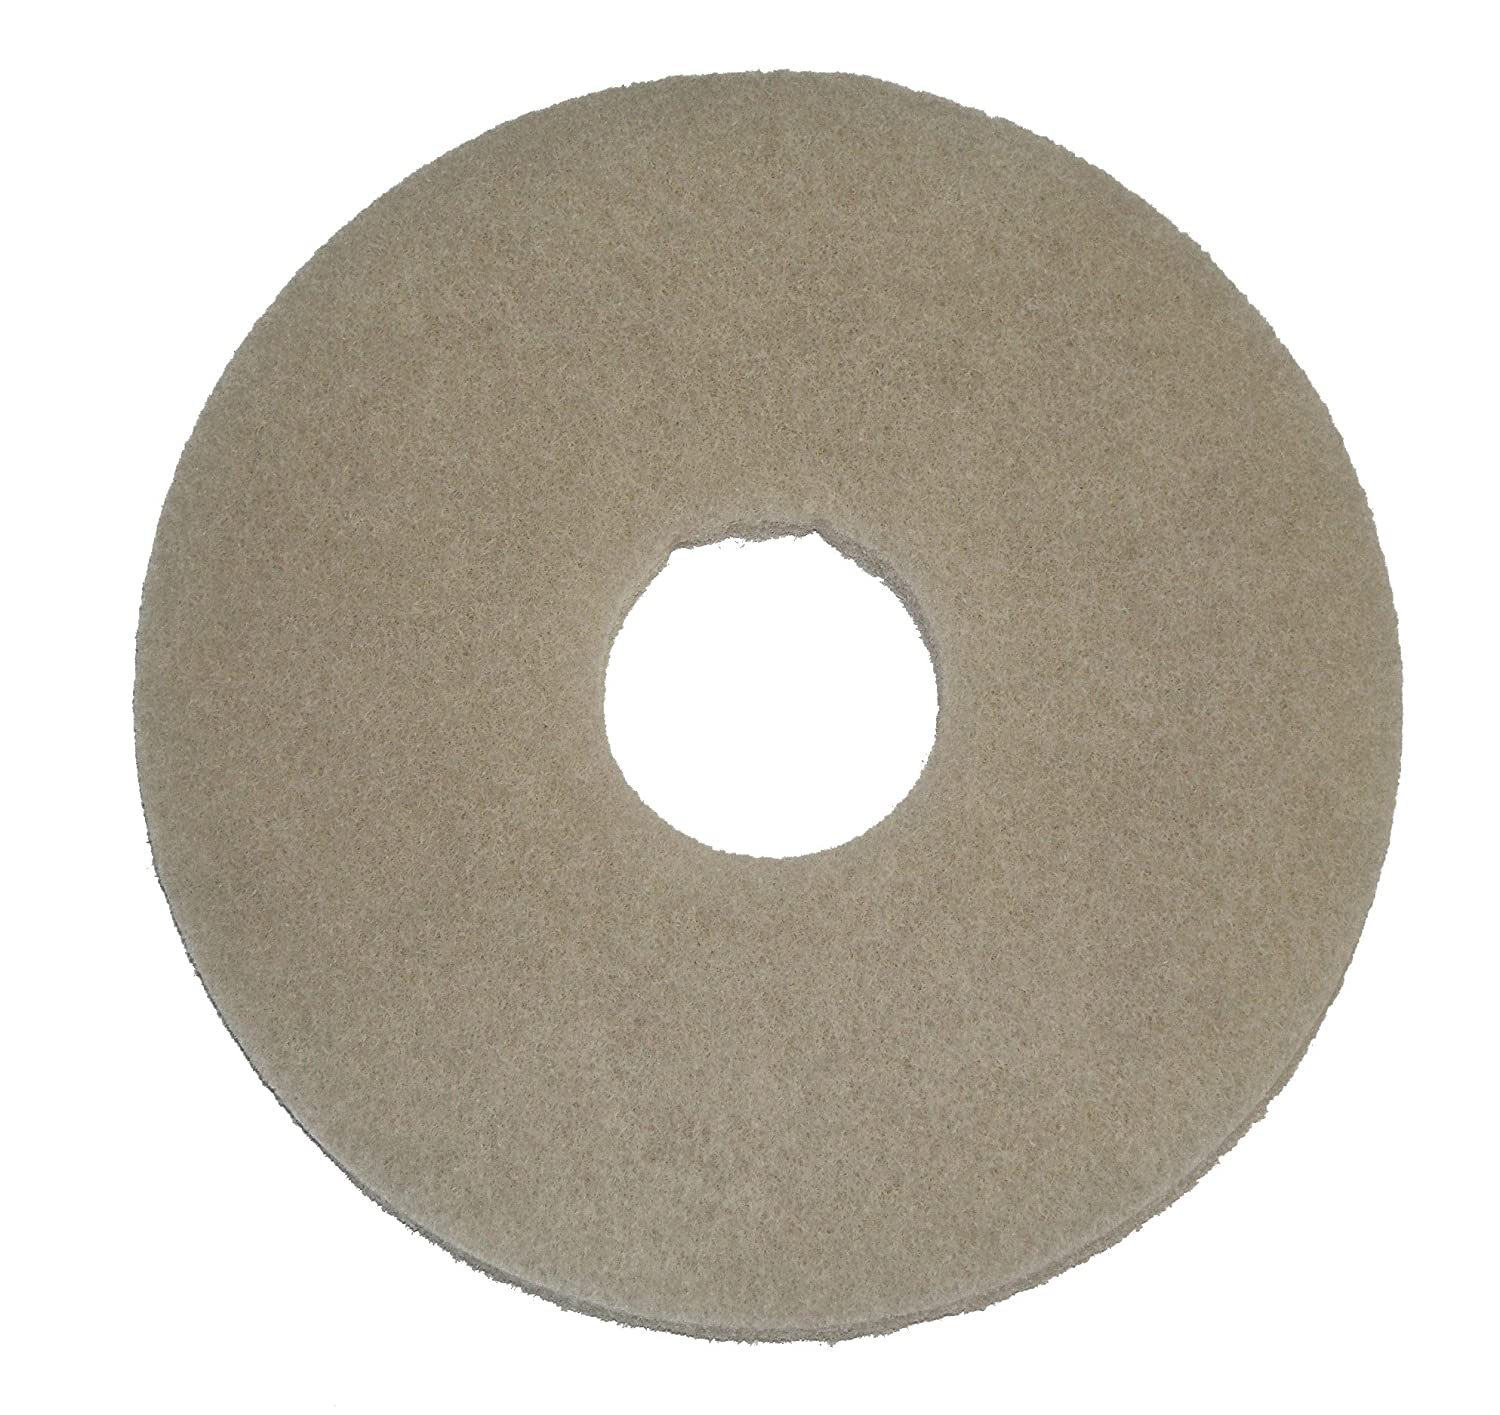 Oreck Commercial 437.058 Stone Care Pad, 12-Inch Diameter for 550MC Orbiter Floor Machine, Grey